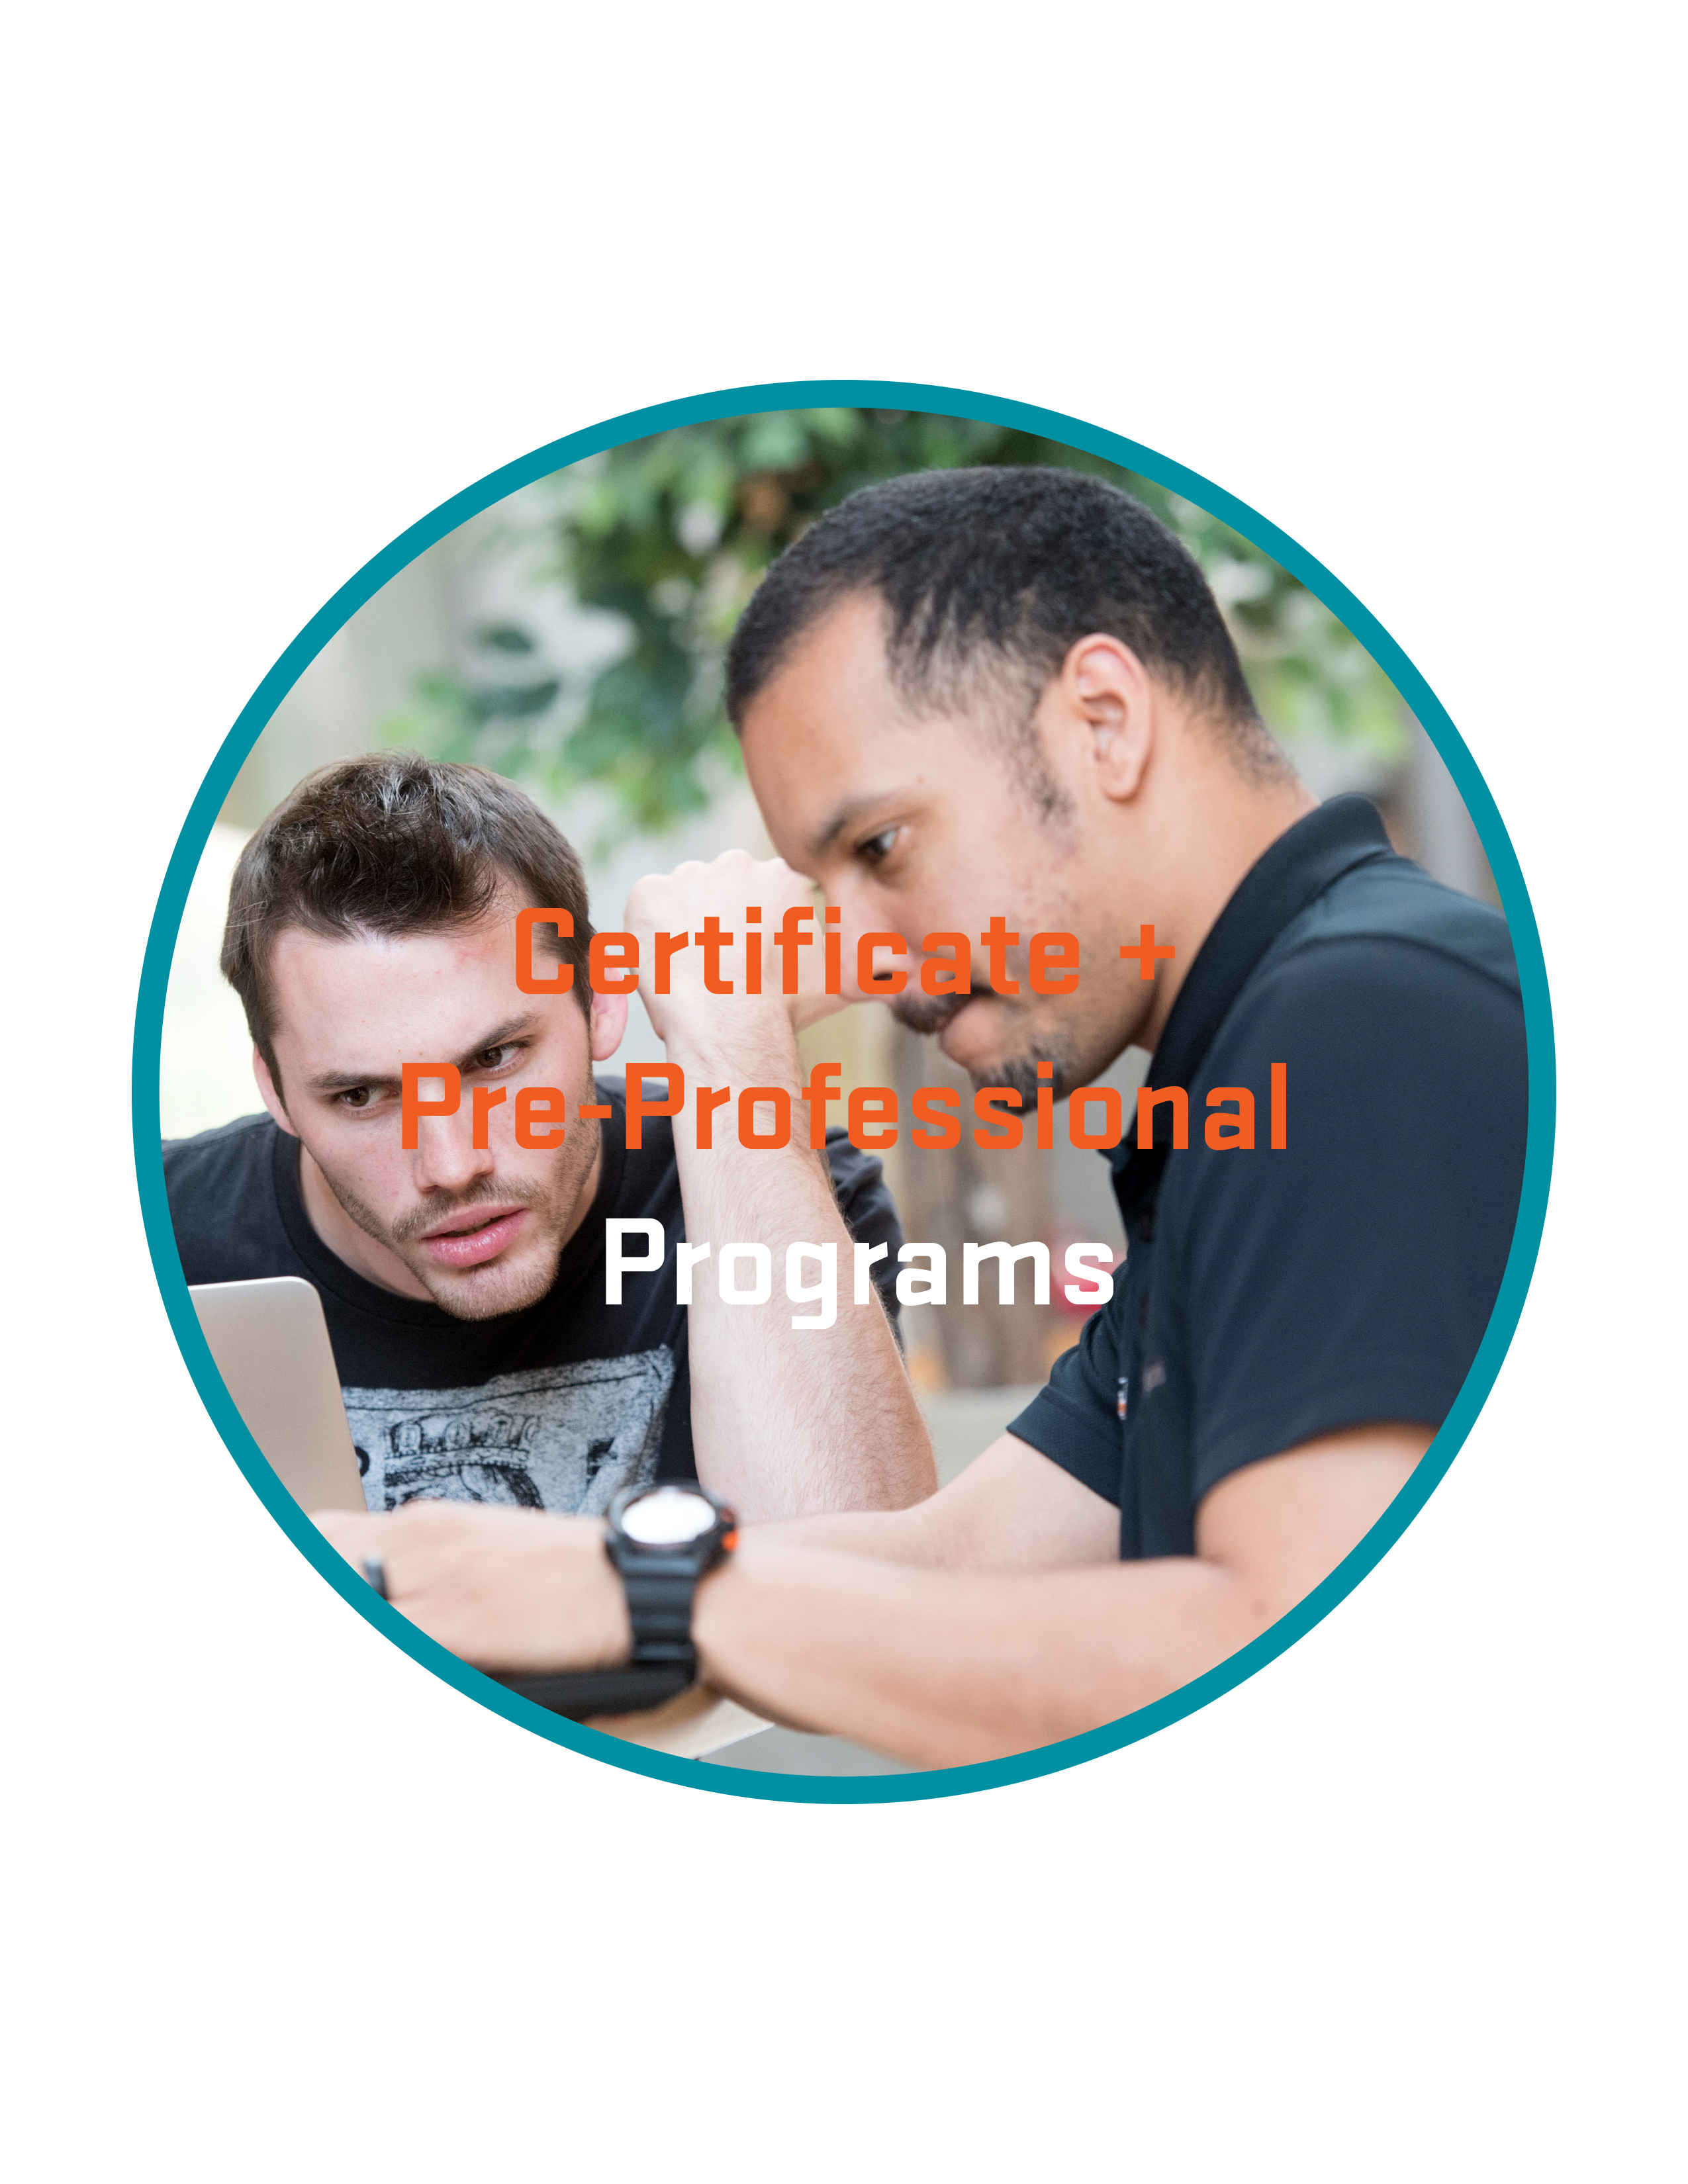 Certificate and Pre-Professional Programs